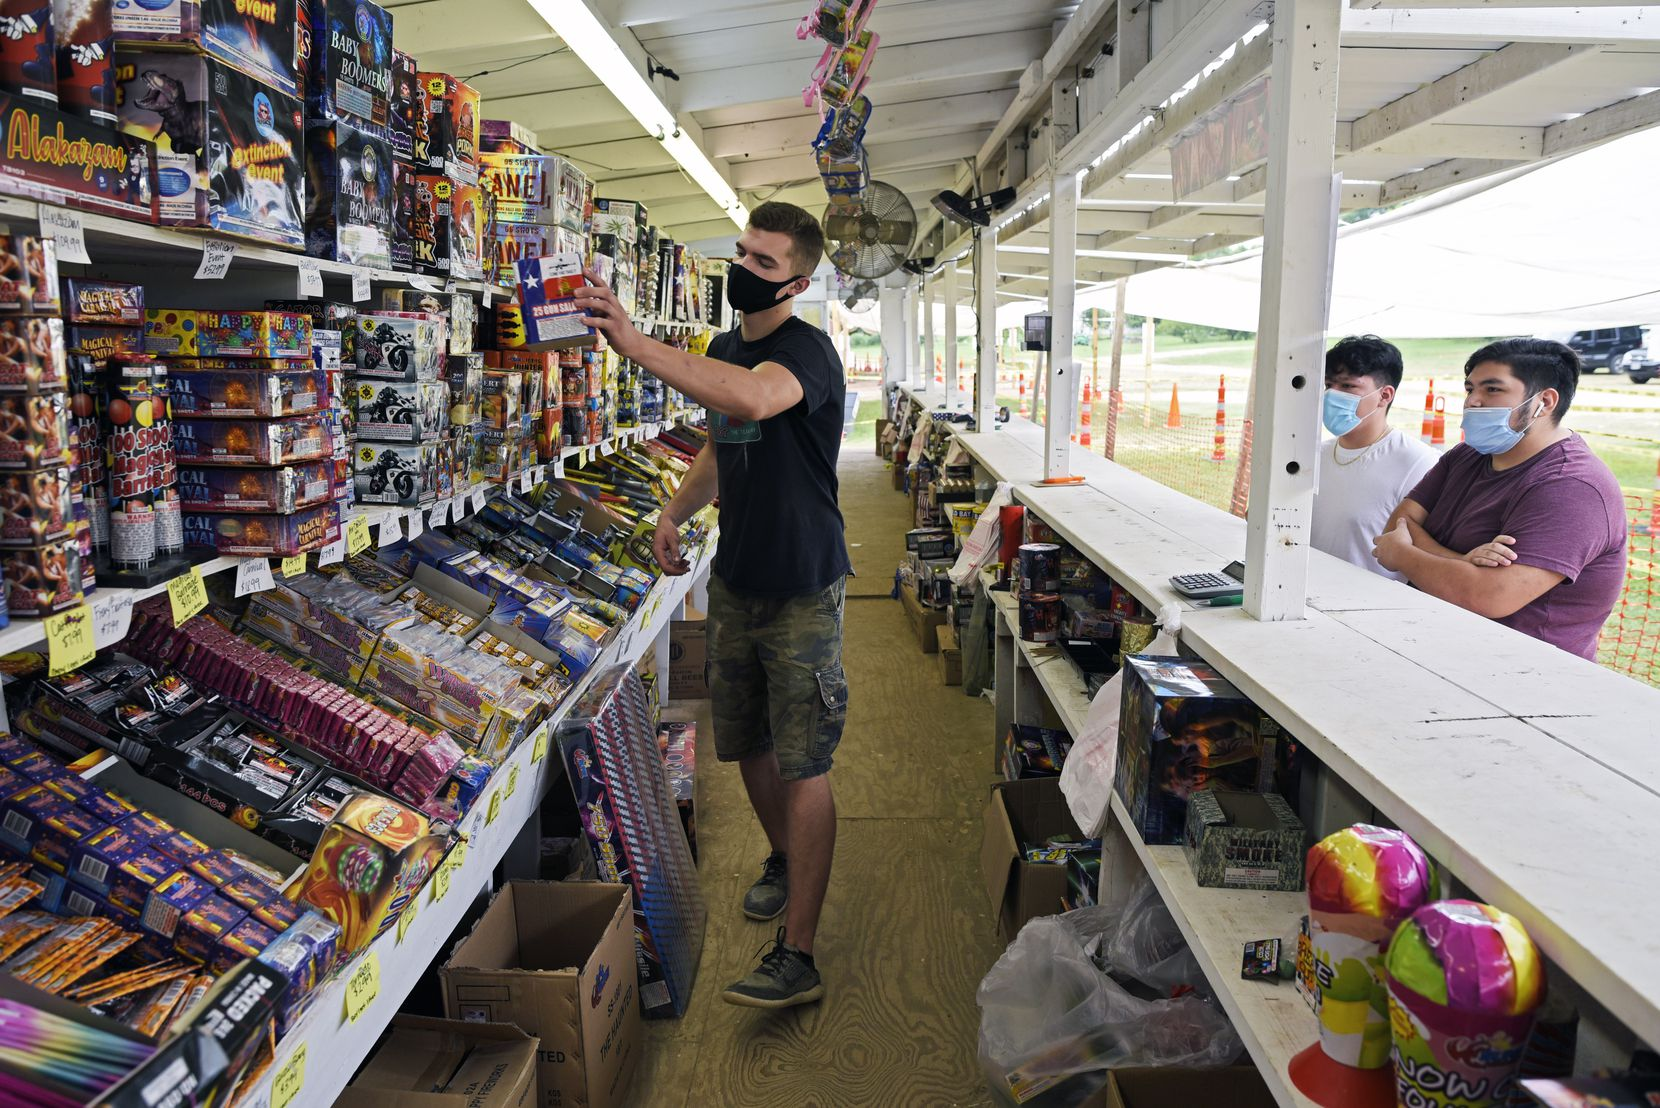 Colton Lusk helped Cristian Lopez and Jose Cervera (far right), both 17, make selections at Palmer Fireworks in Dallas on Tuesday.